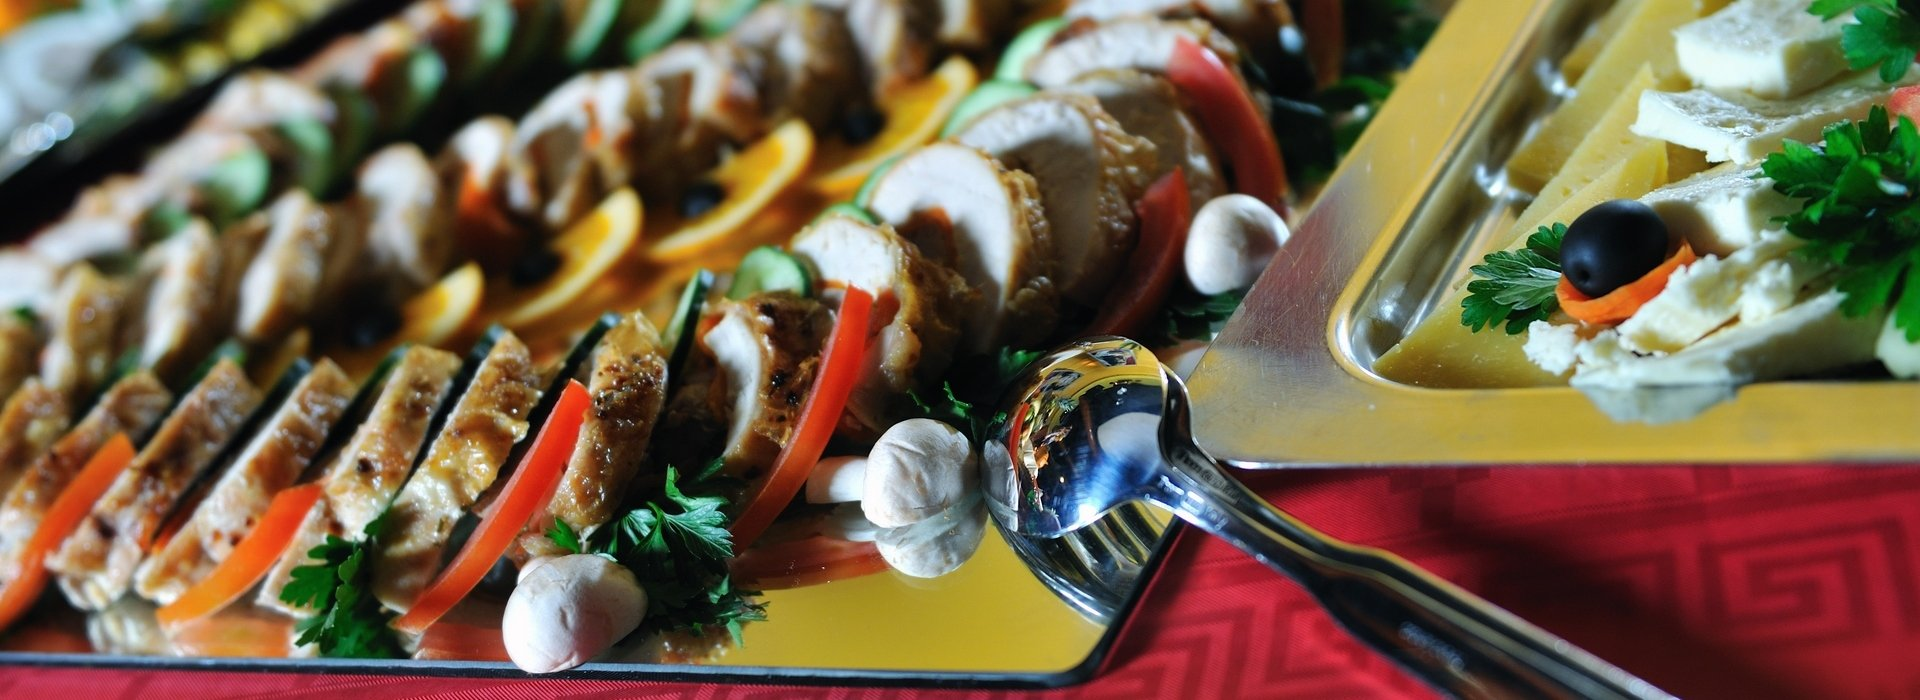 Budapest Catering Service – Catering in Budapest, Hungary